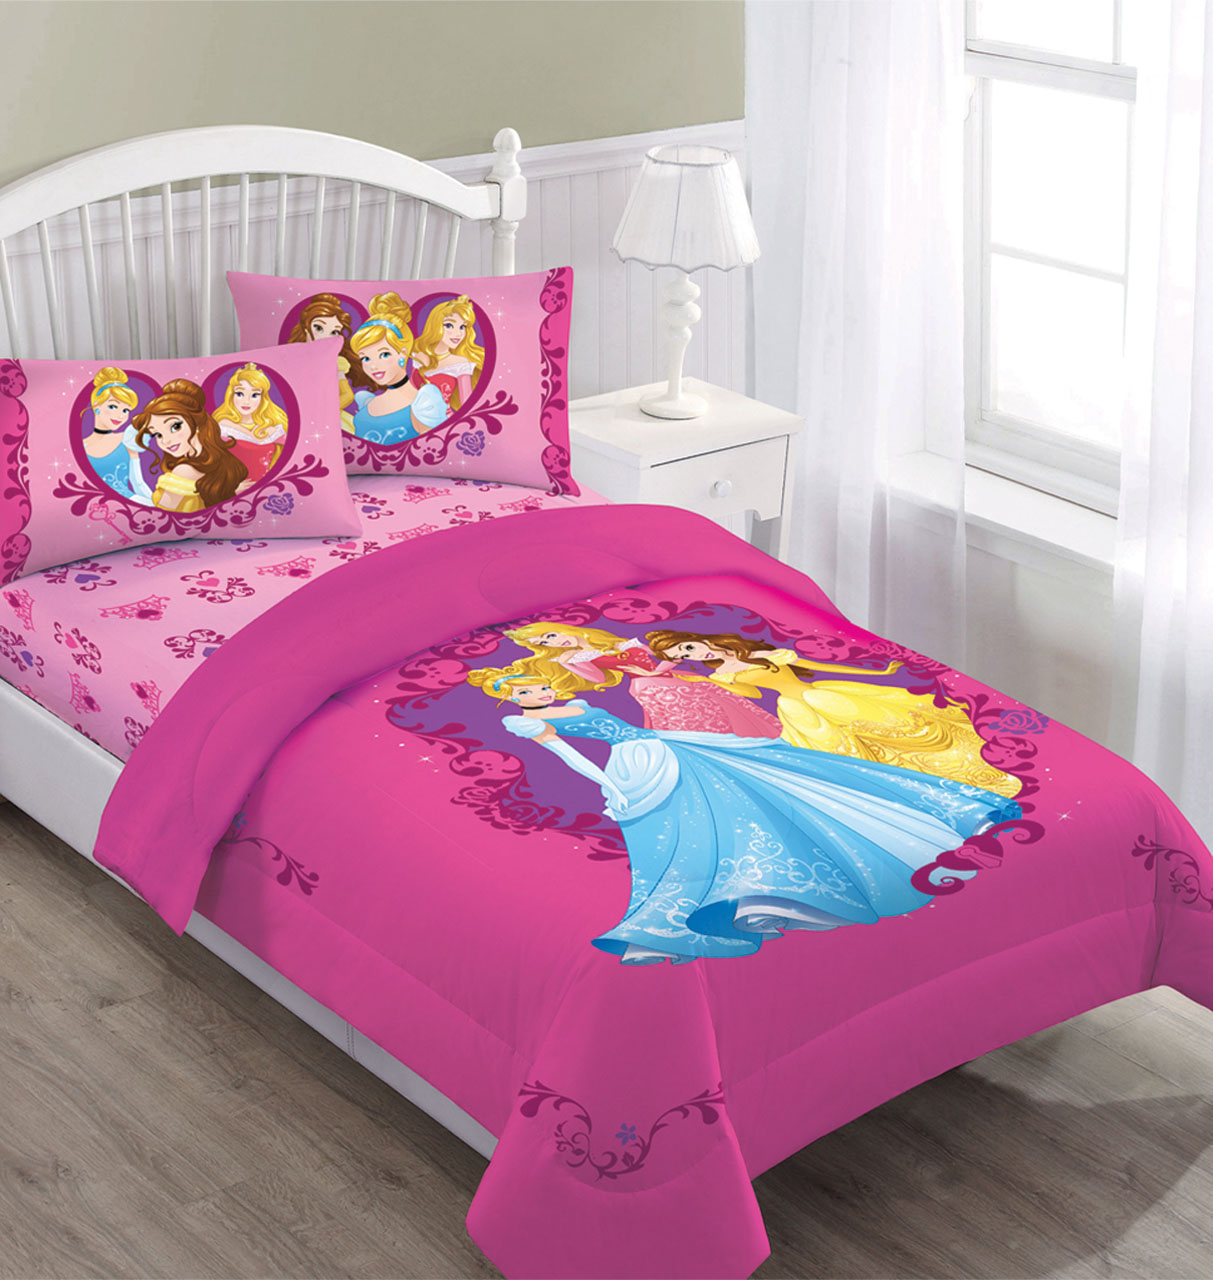 Disney Princess Gateway to Dreams Twin Bedding Comforter Set by